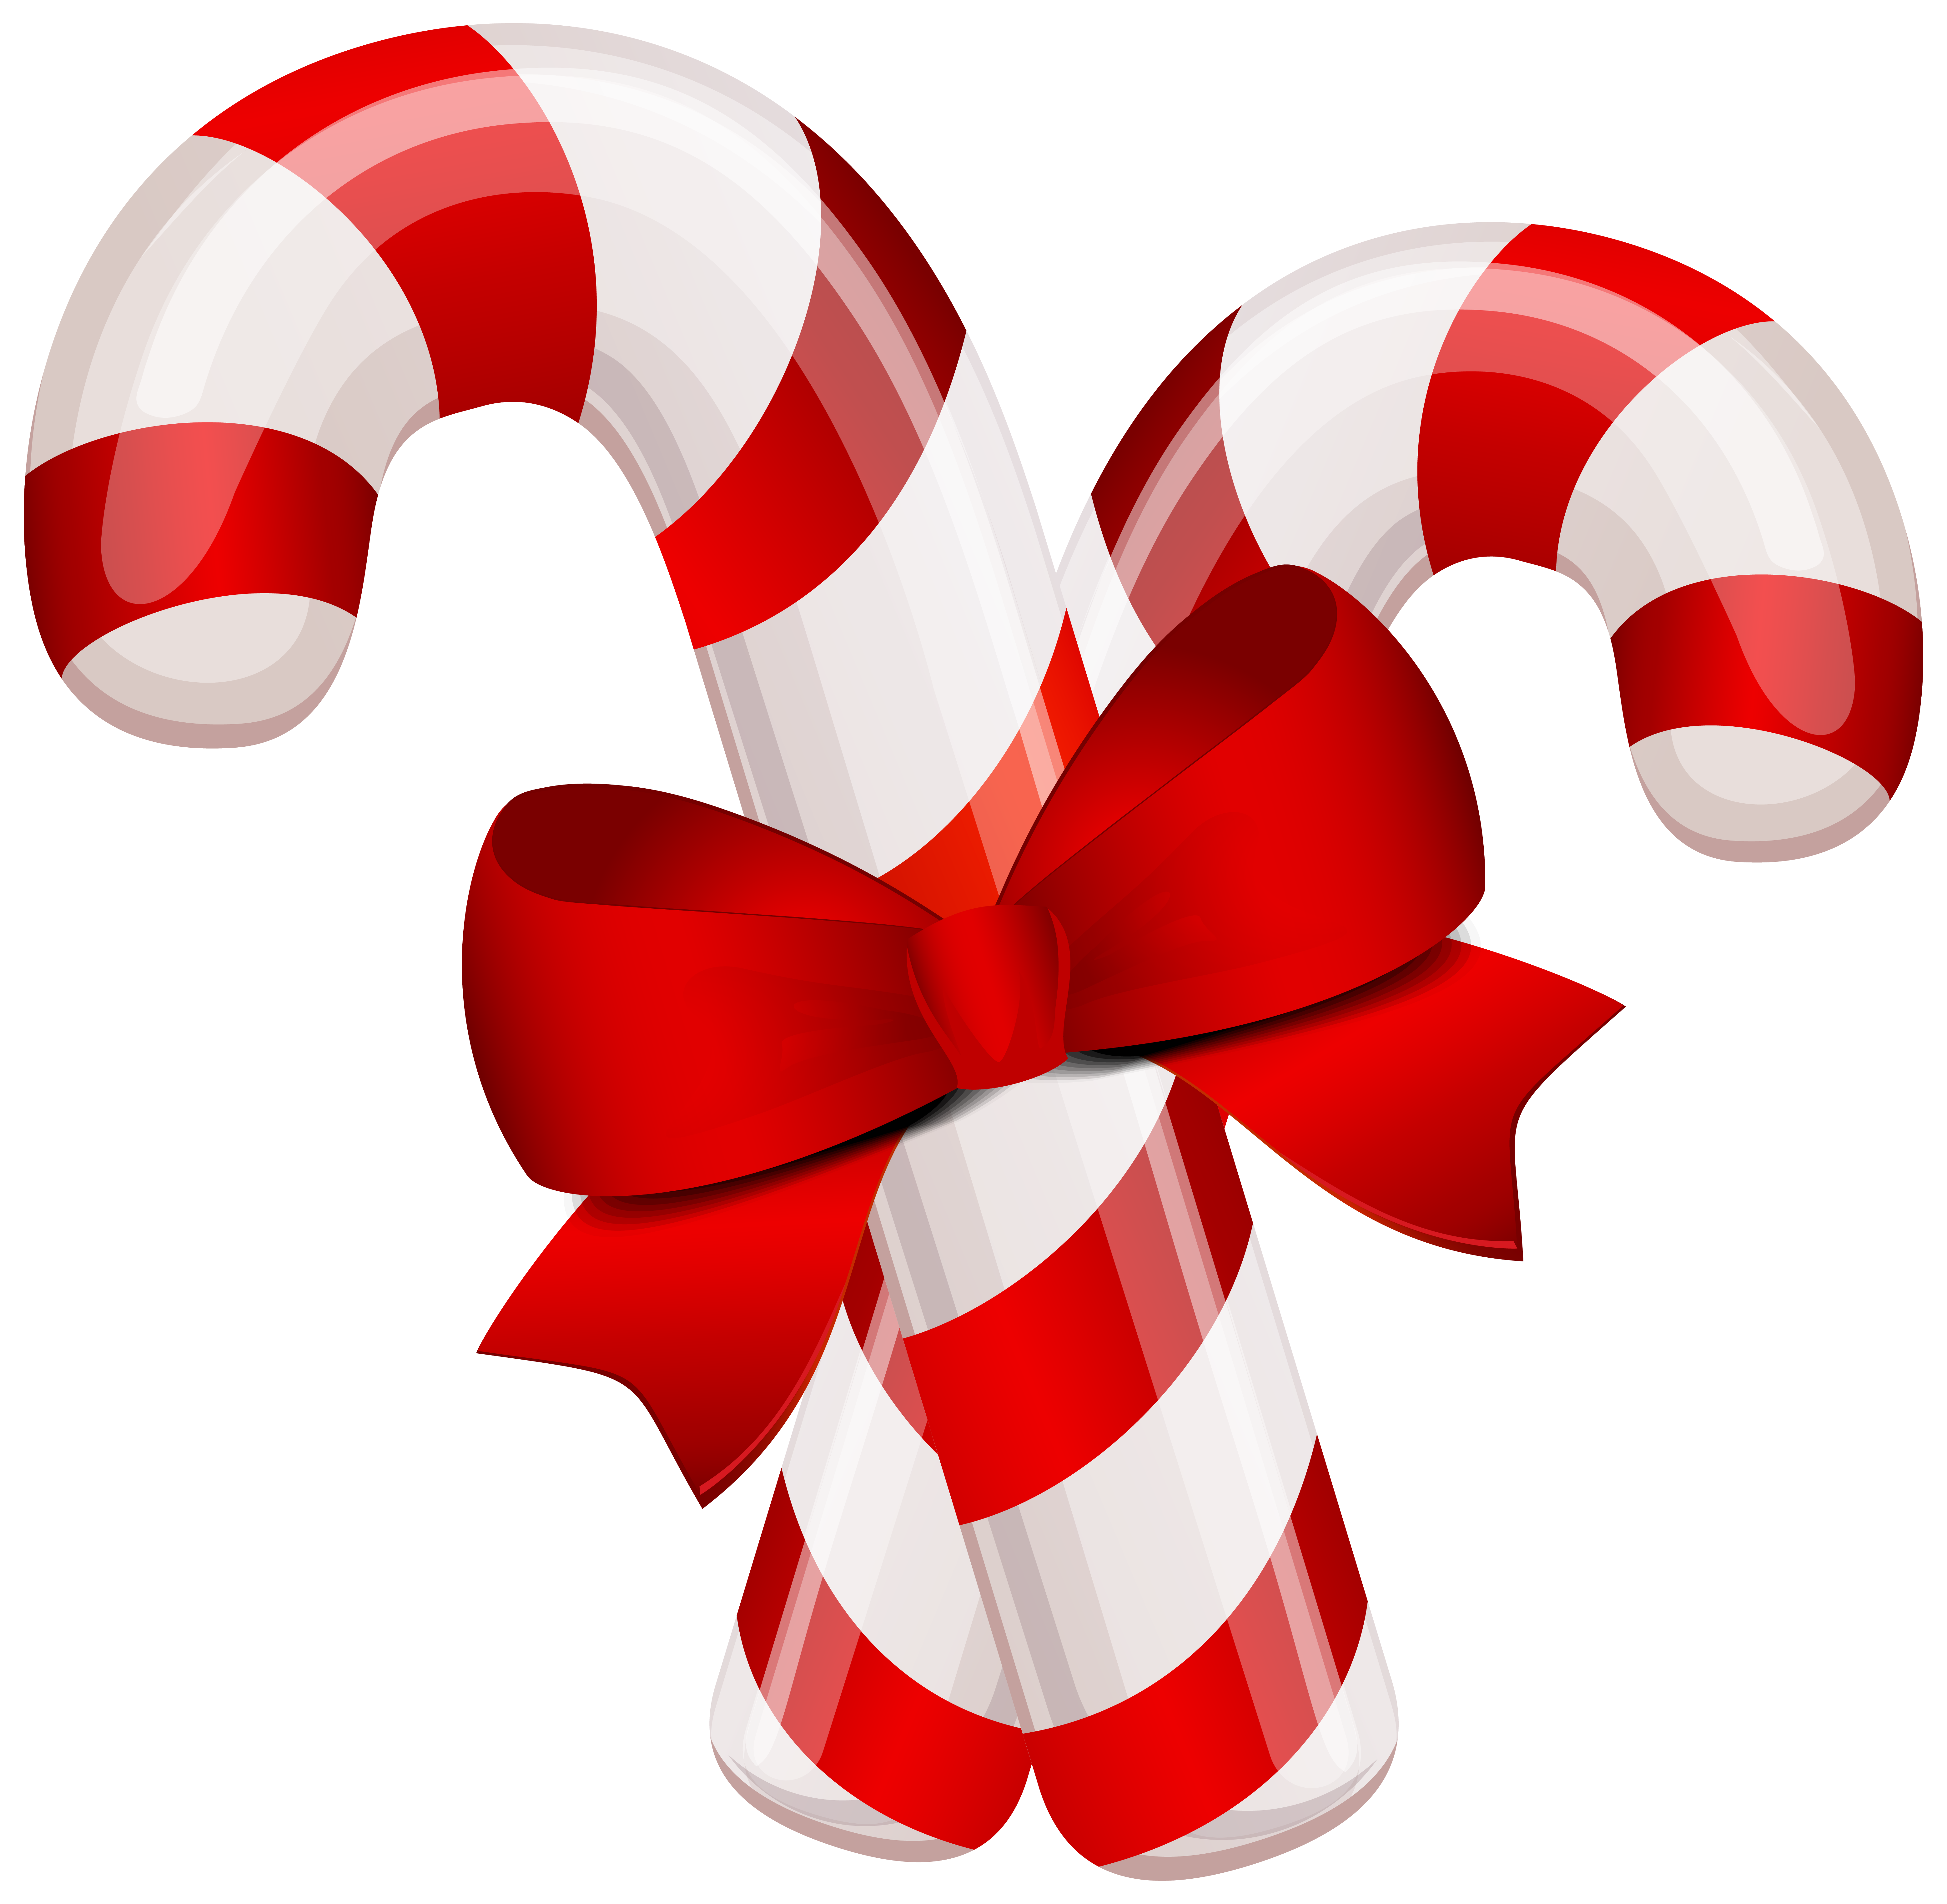 Christmas Classic Candy Canes PNG Clipart Image.